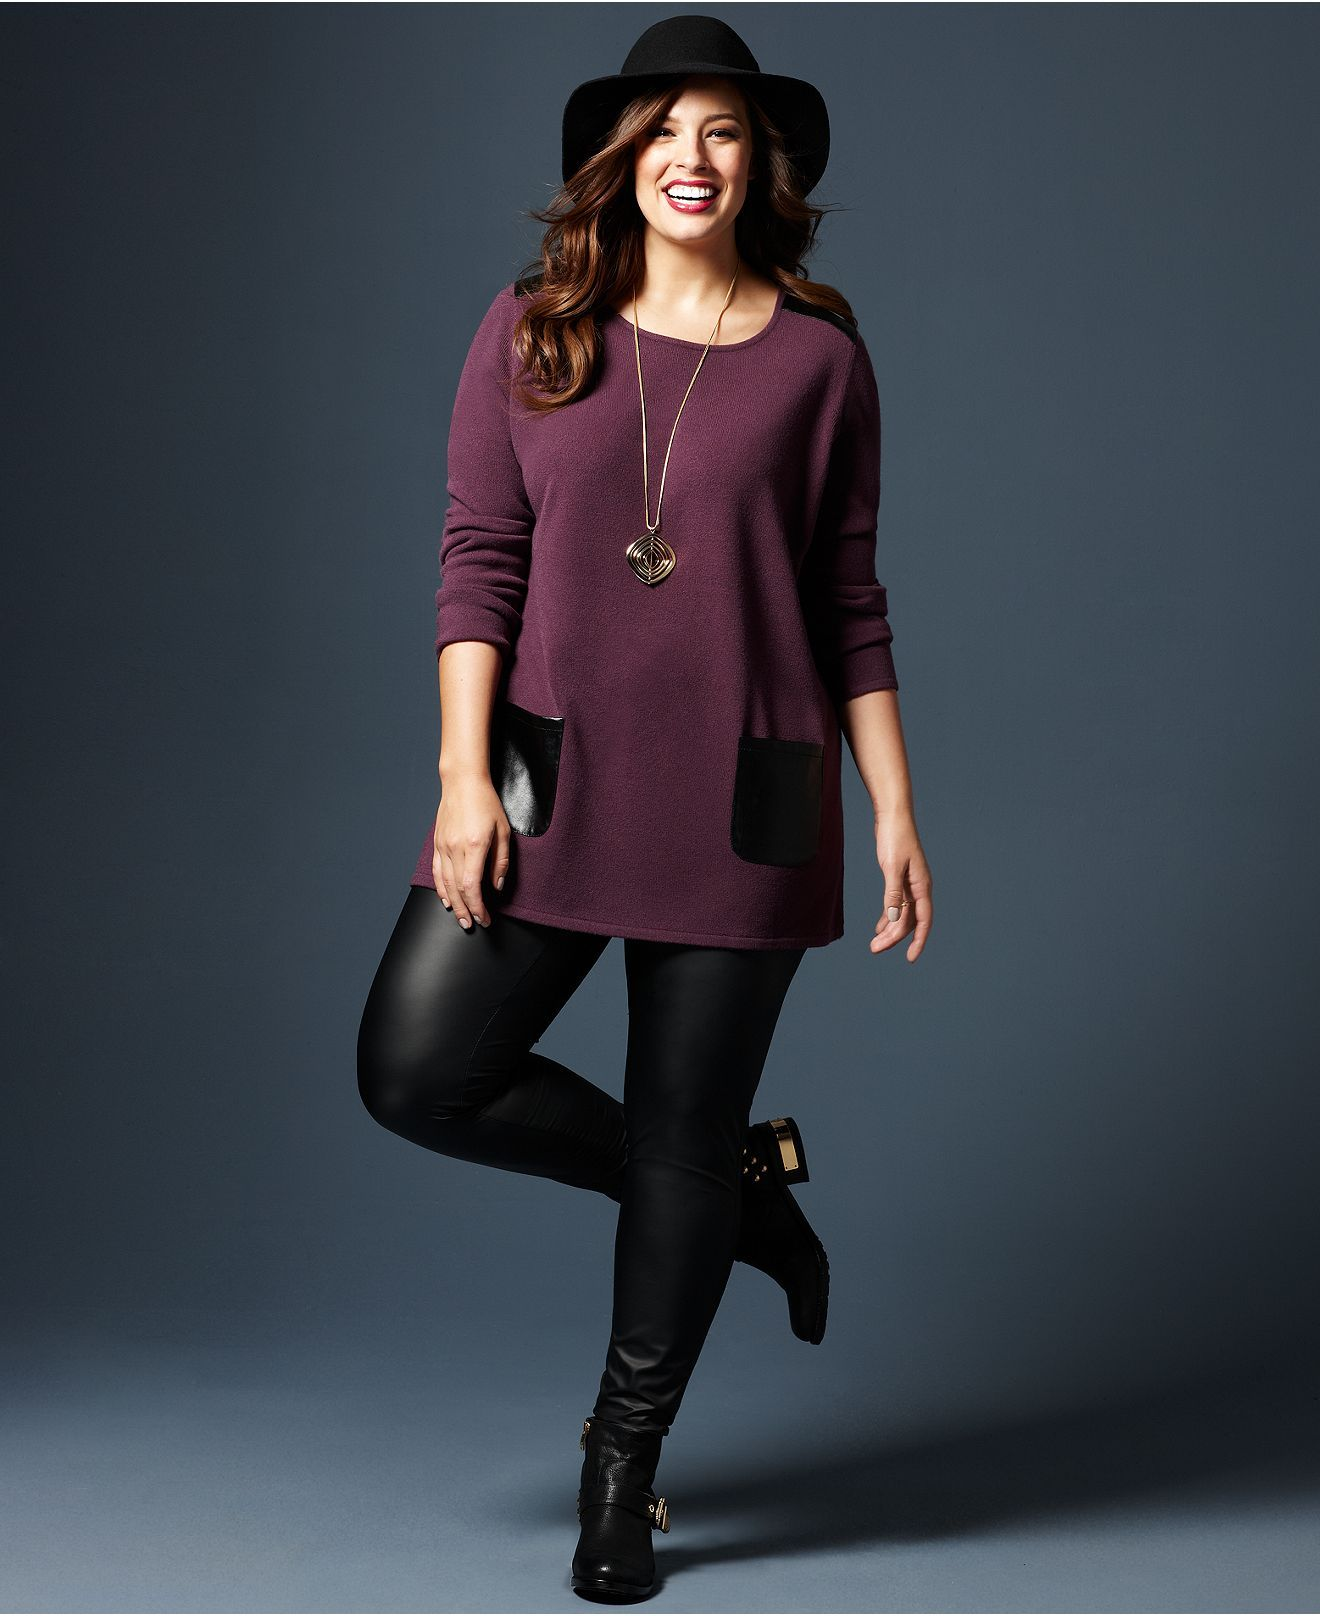 Choosing Plus-Size Clothing for Your Body Type Women's bodies come in all shapes and sizes. Plus-size fashion is designed for women with full figures and natural curves.